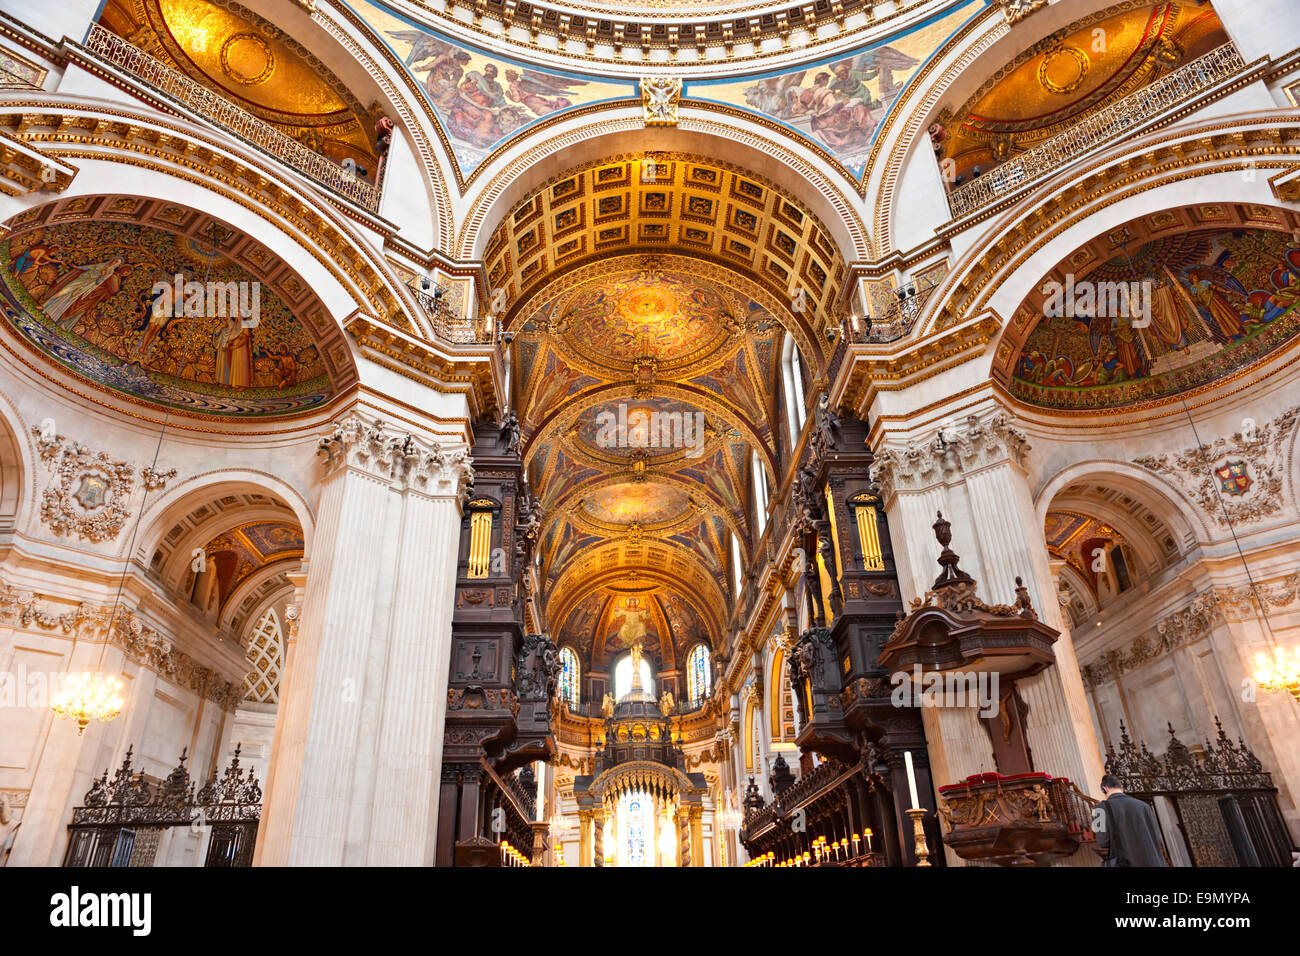 Interior Of The St Paulu0027s Cathedral, London, UK.   Stock Image